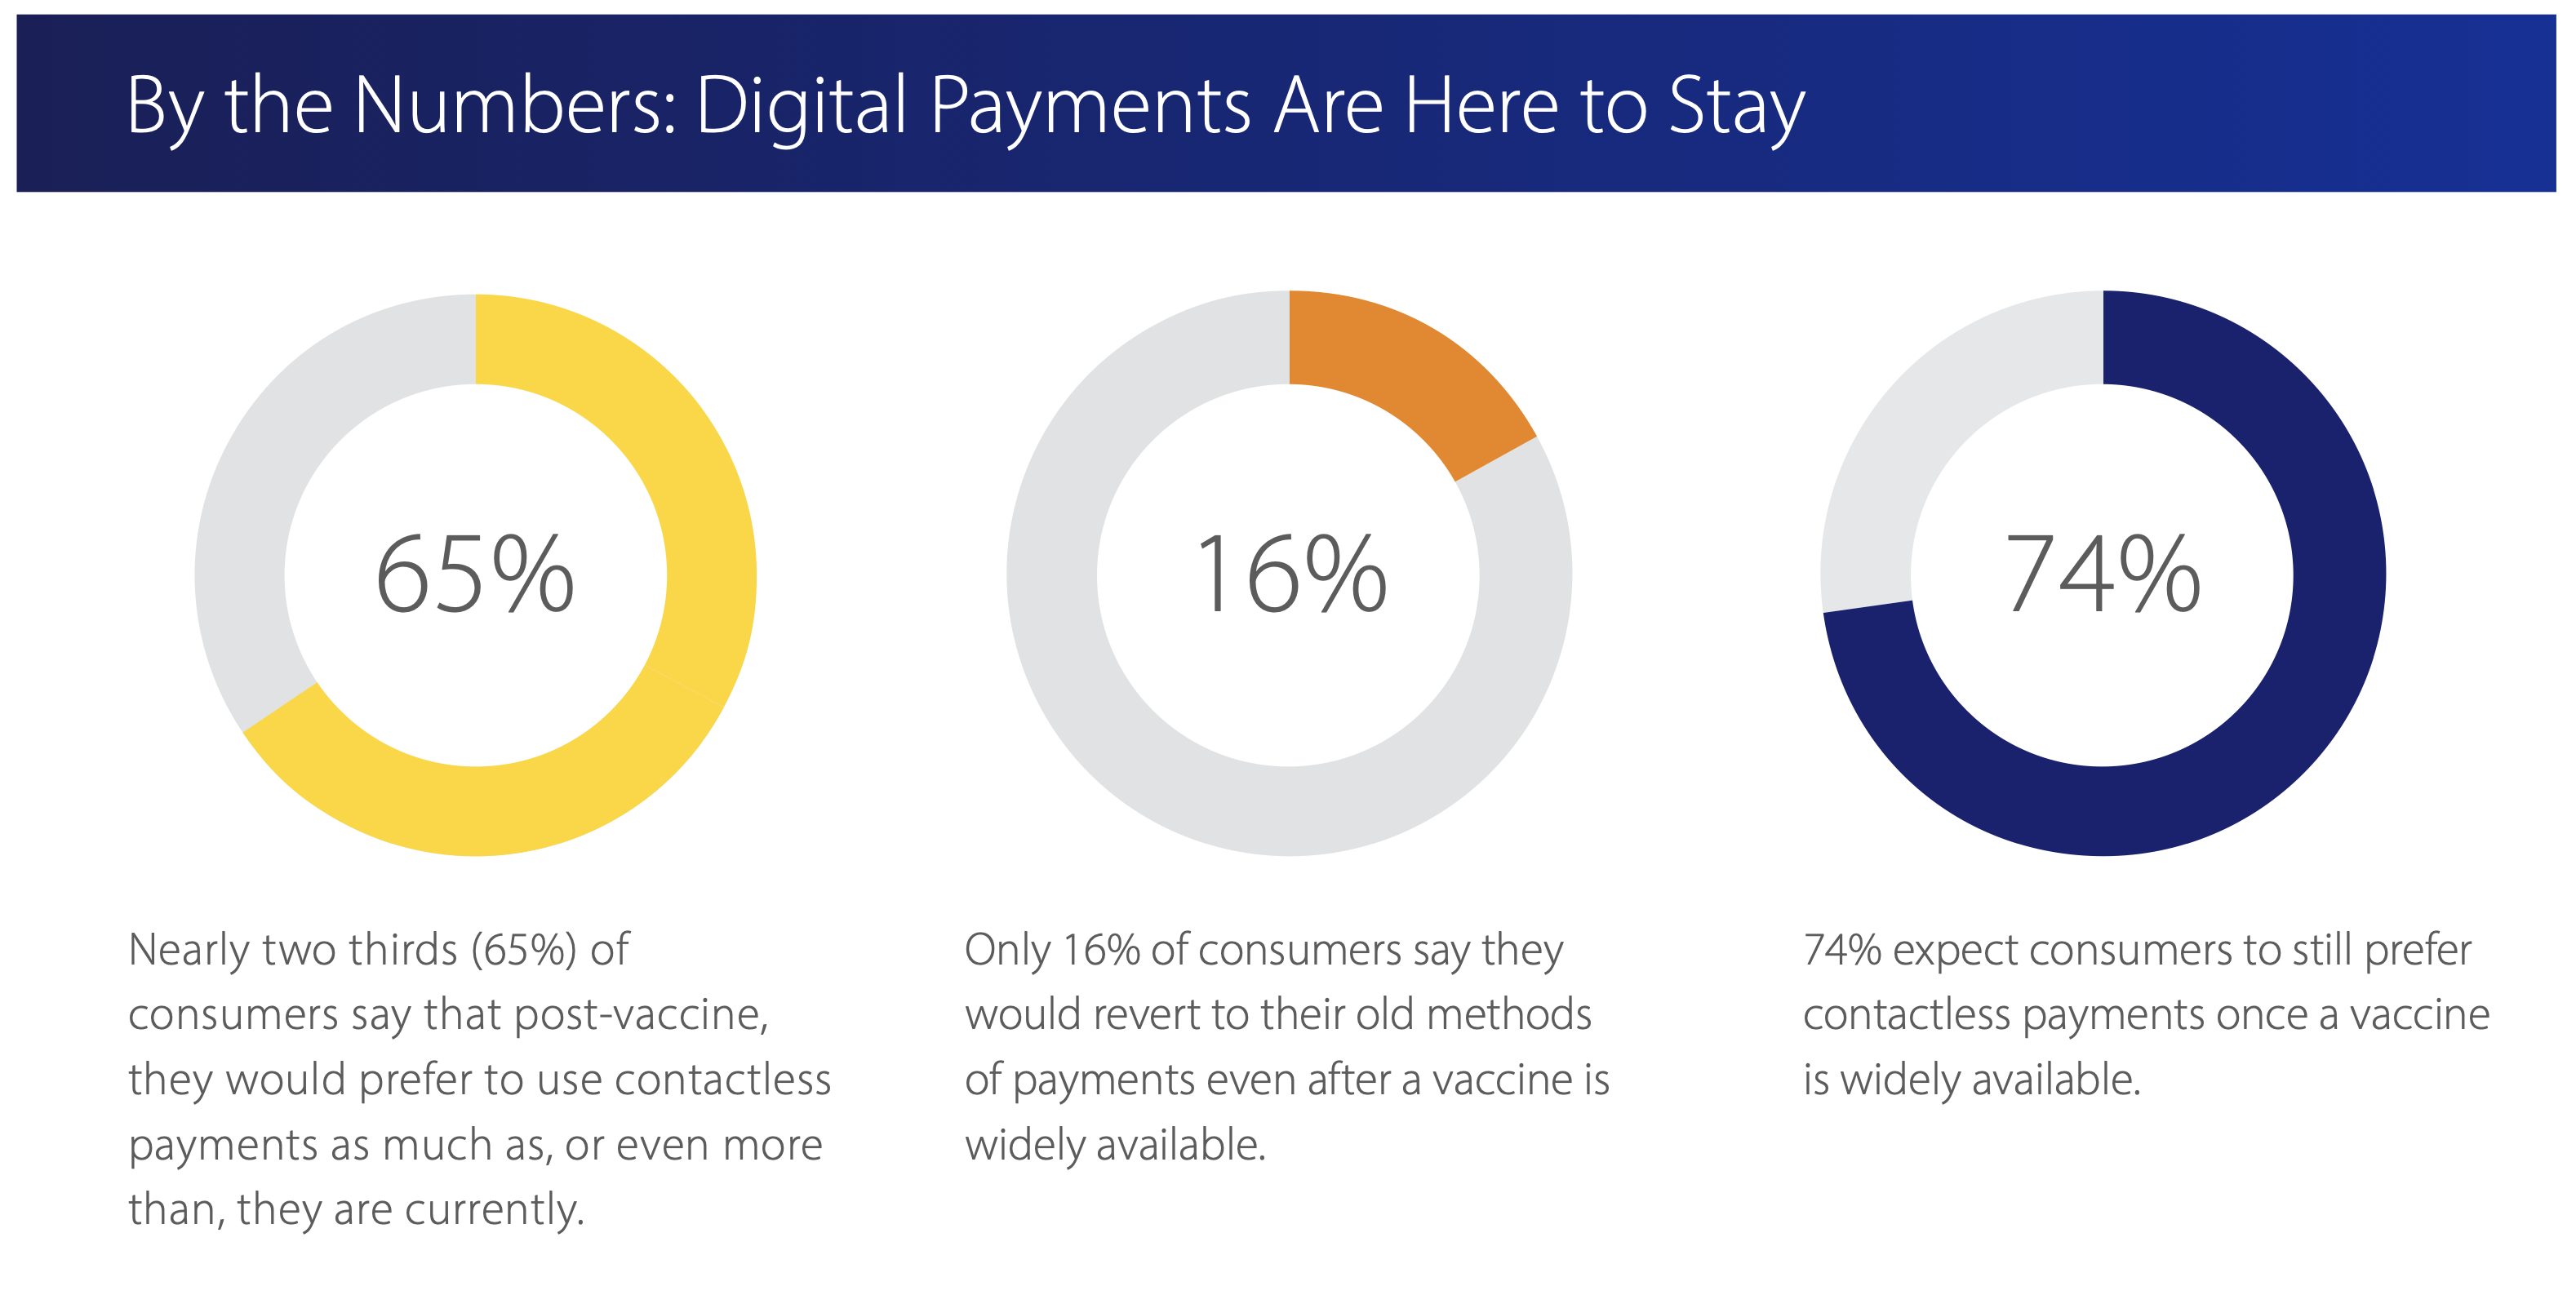 By The Numbers: Digital Payments Are Here TO Stay